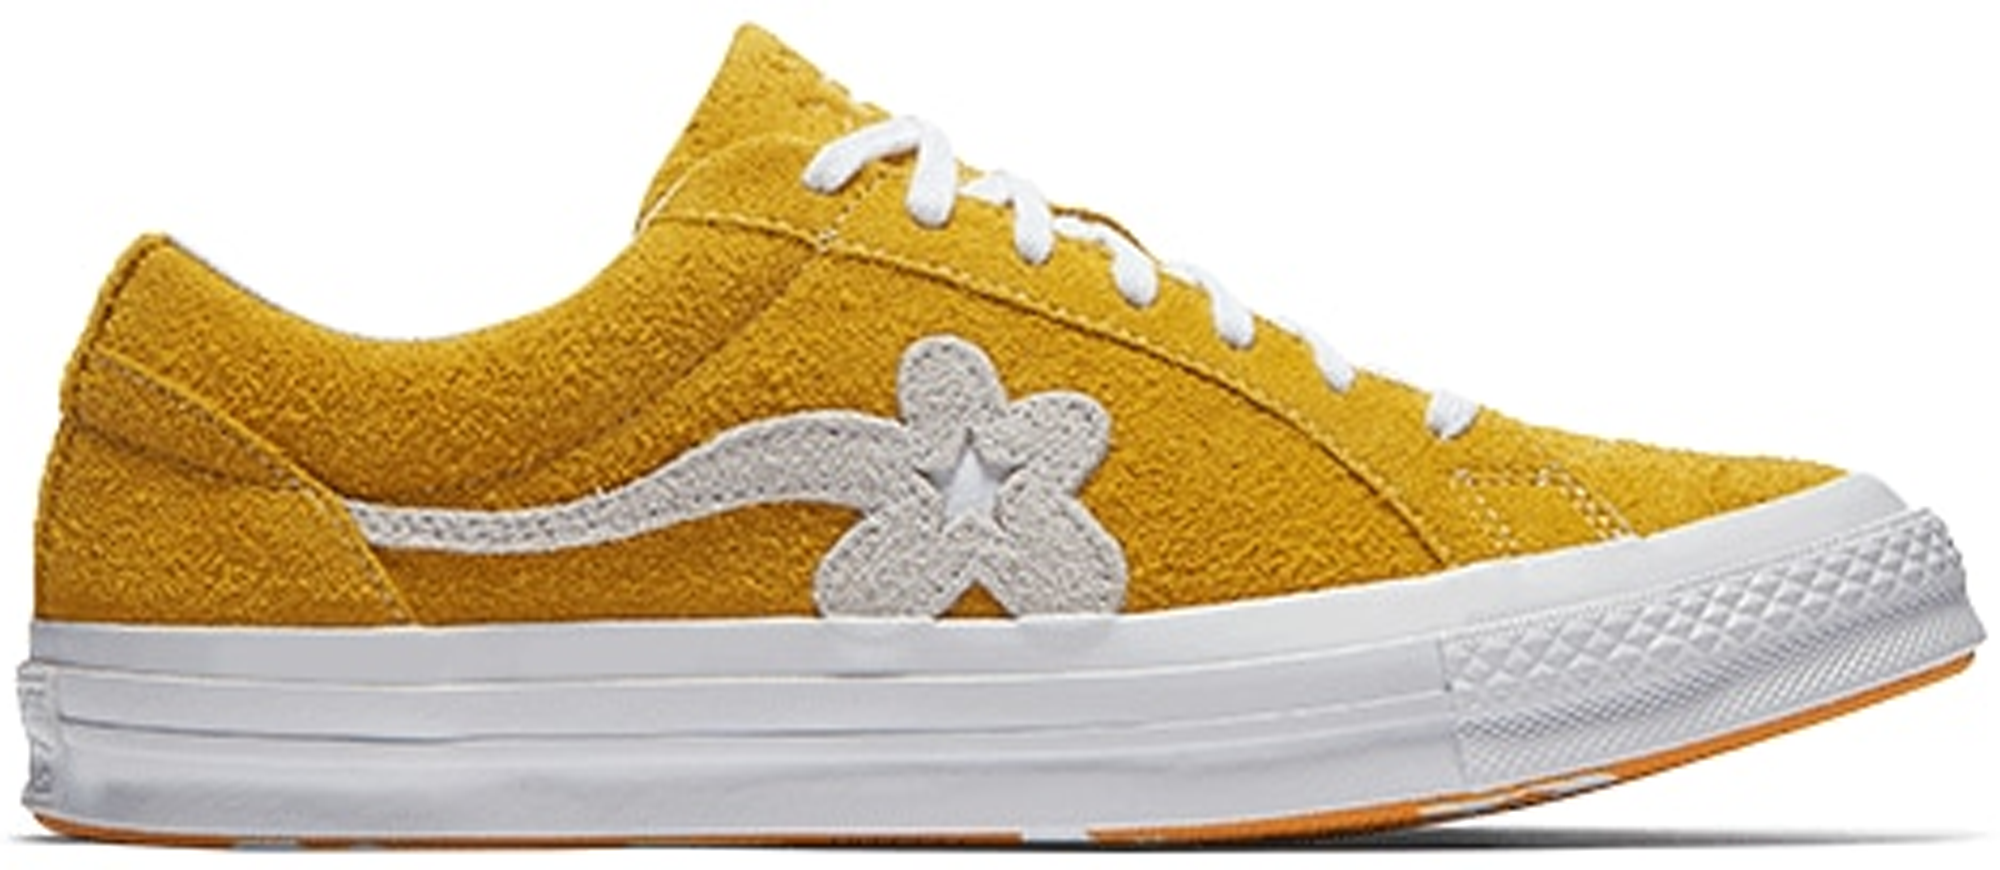 Converse One Star Ox Tyler The Creator Golf Le Fleur Solar Power